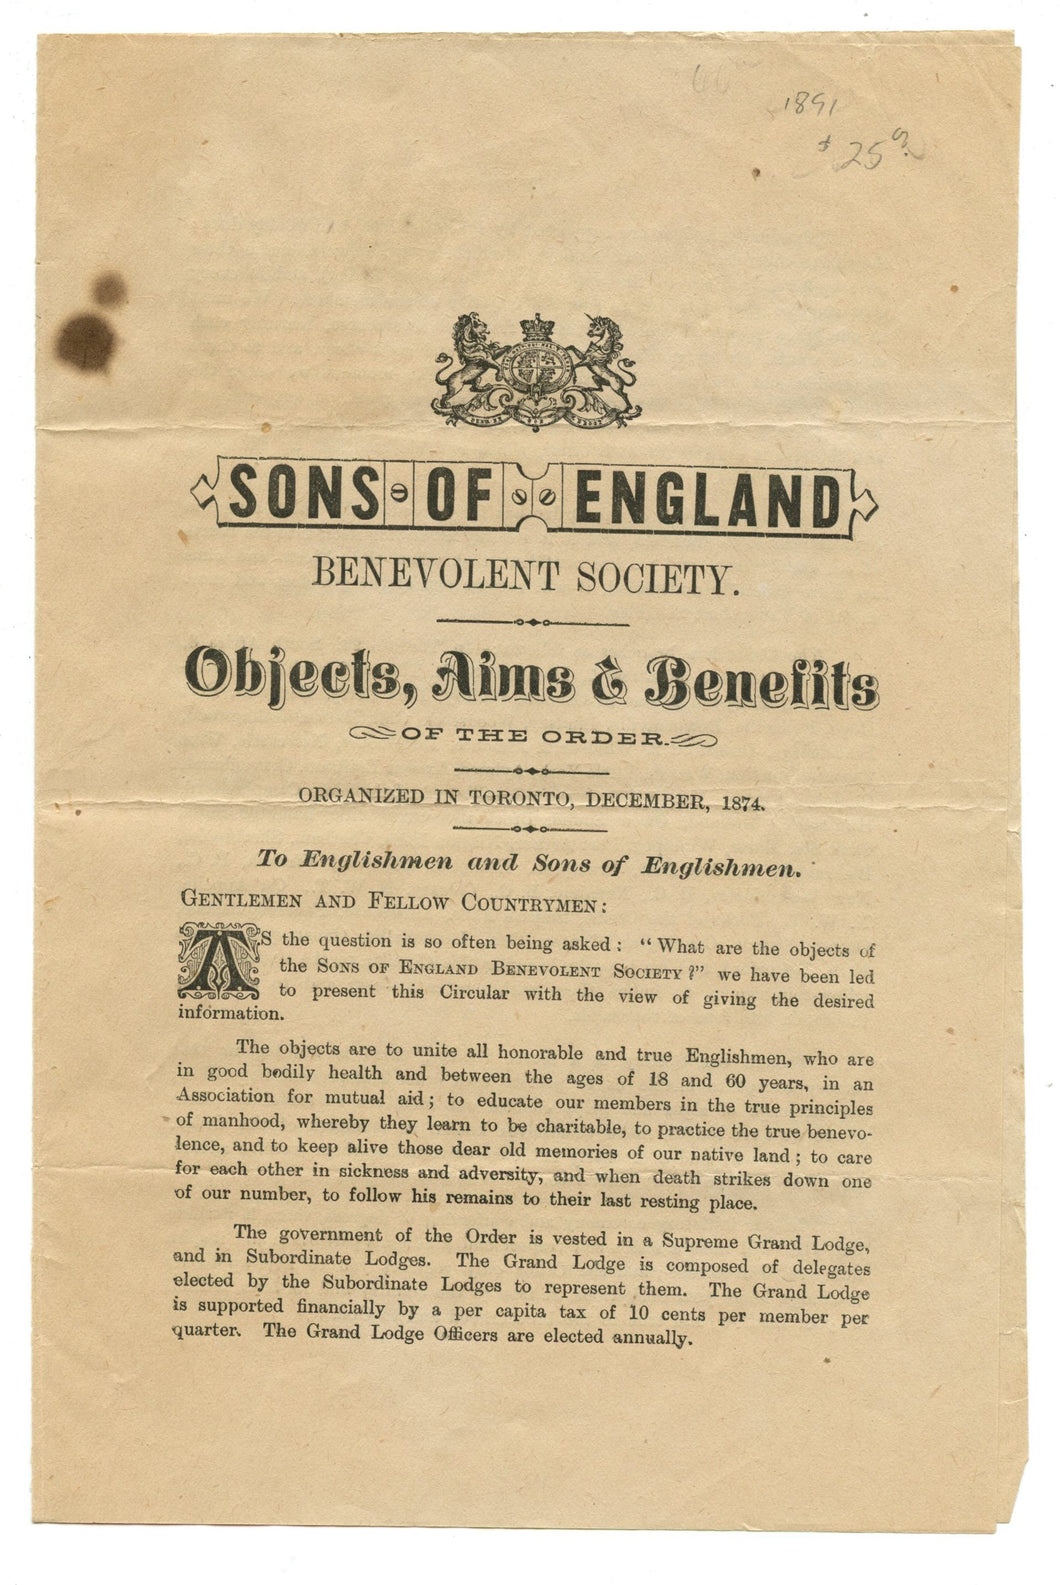 Sons of England Benevolent Society: Objects, Aims & Benefits of the Order